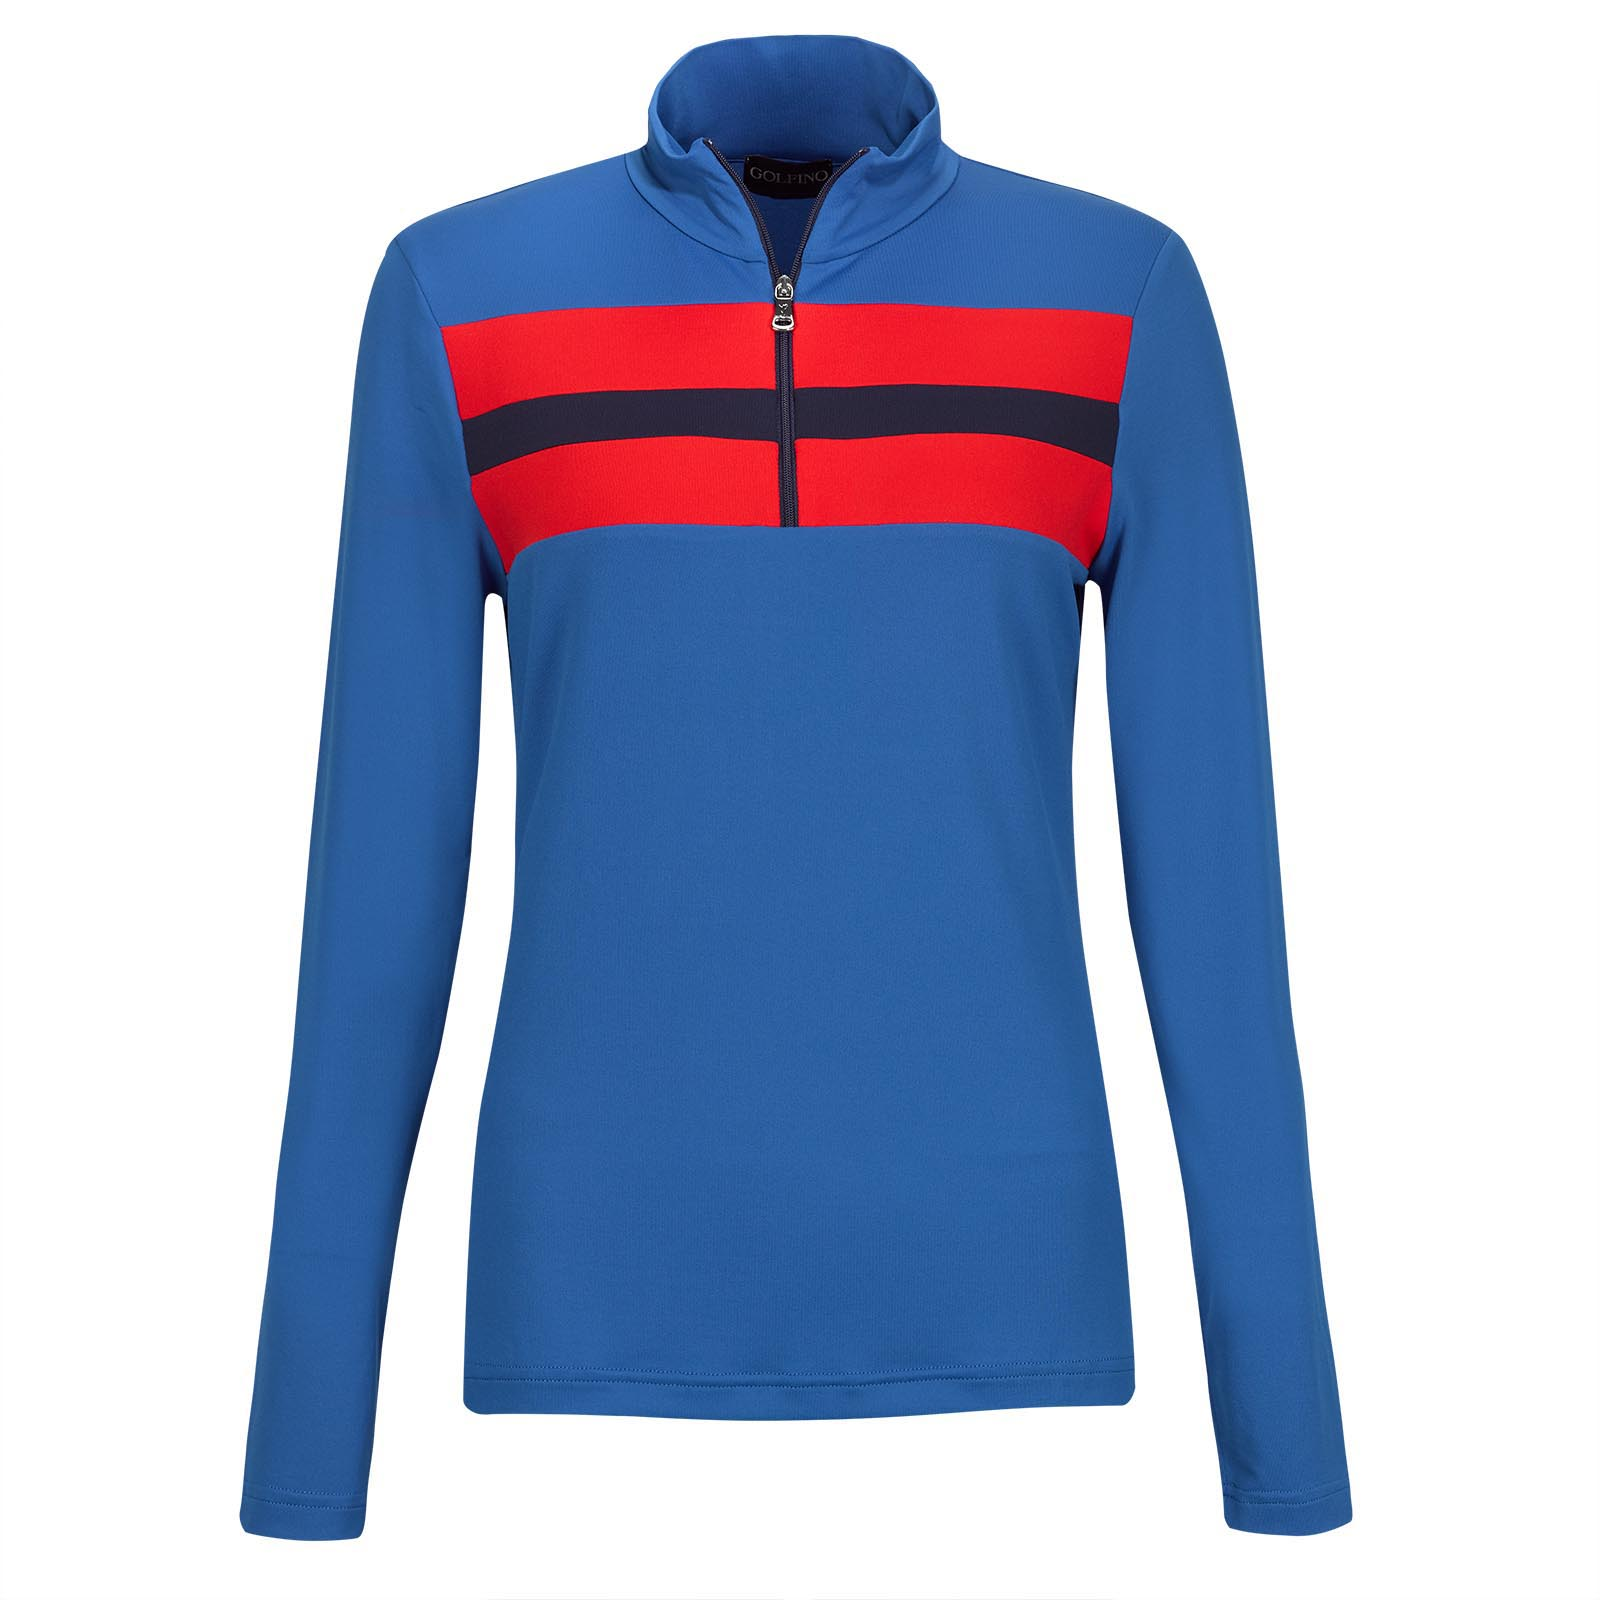 Ladies' longsleeve Retro sport golf troyer dry comfort in slim fit